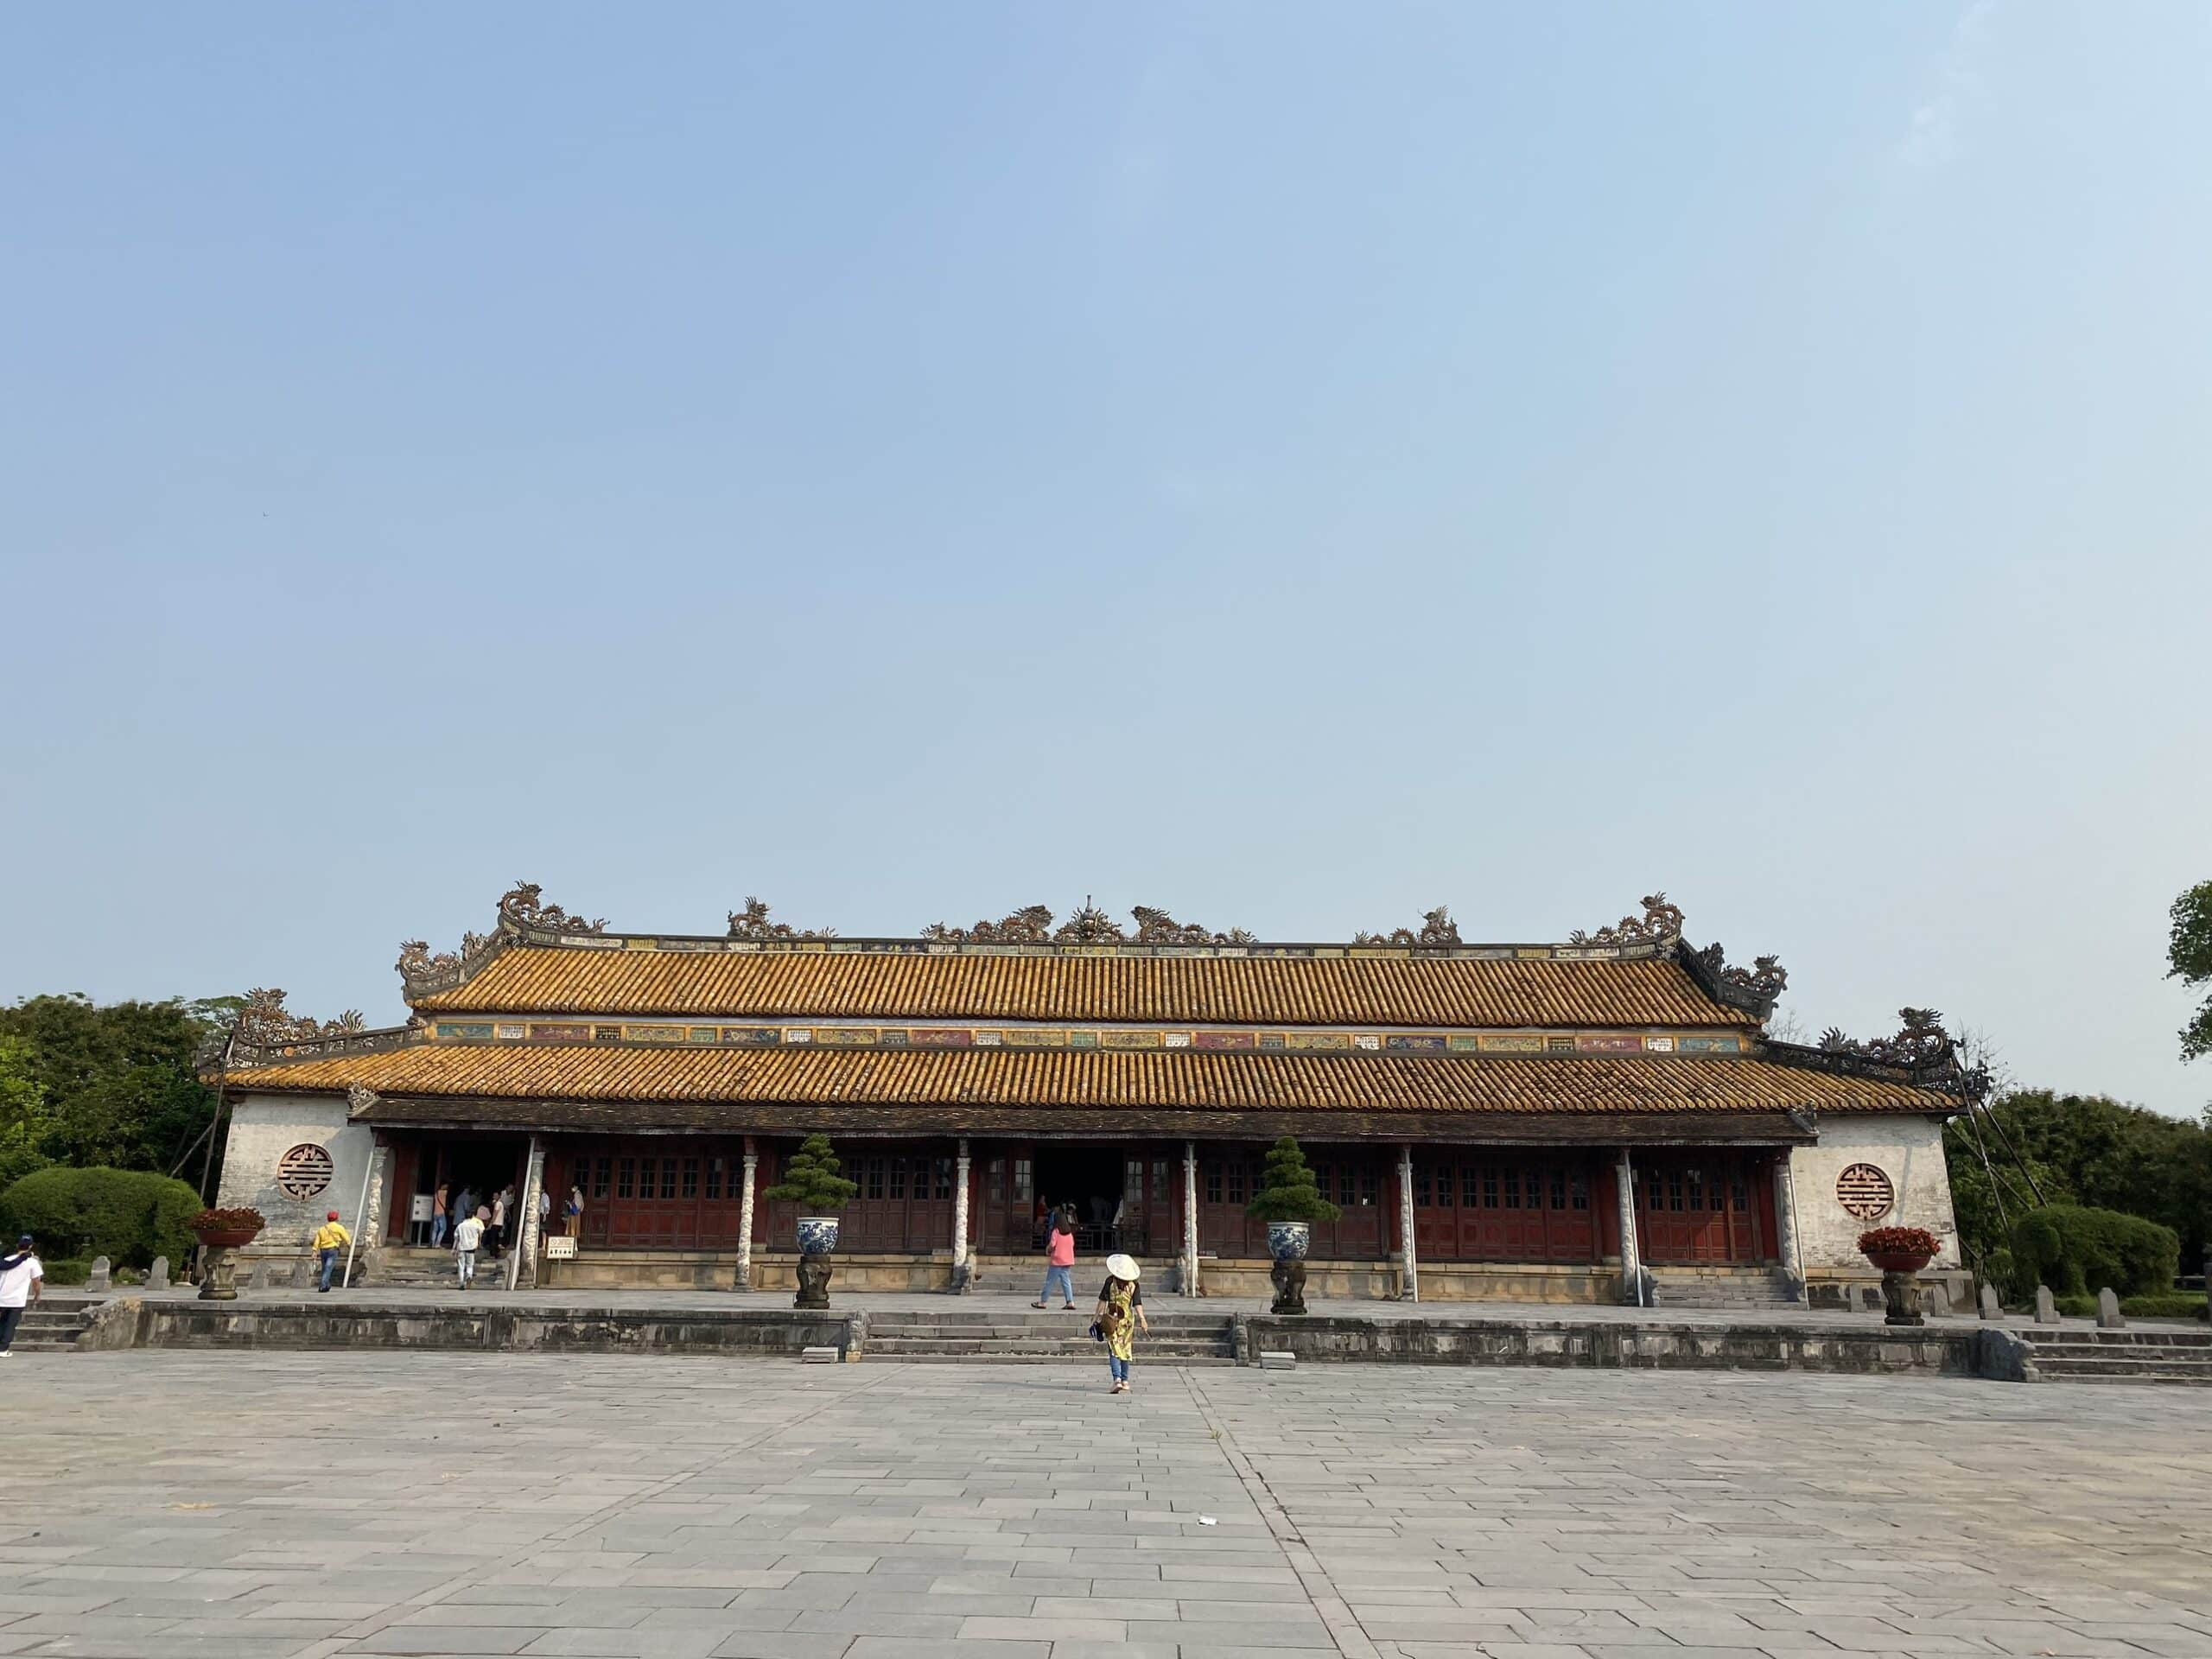 Hue Citadel witnessed the fall of the last dynasty during the Vietnamese feudal dynasty with 13 kings.